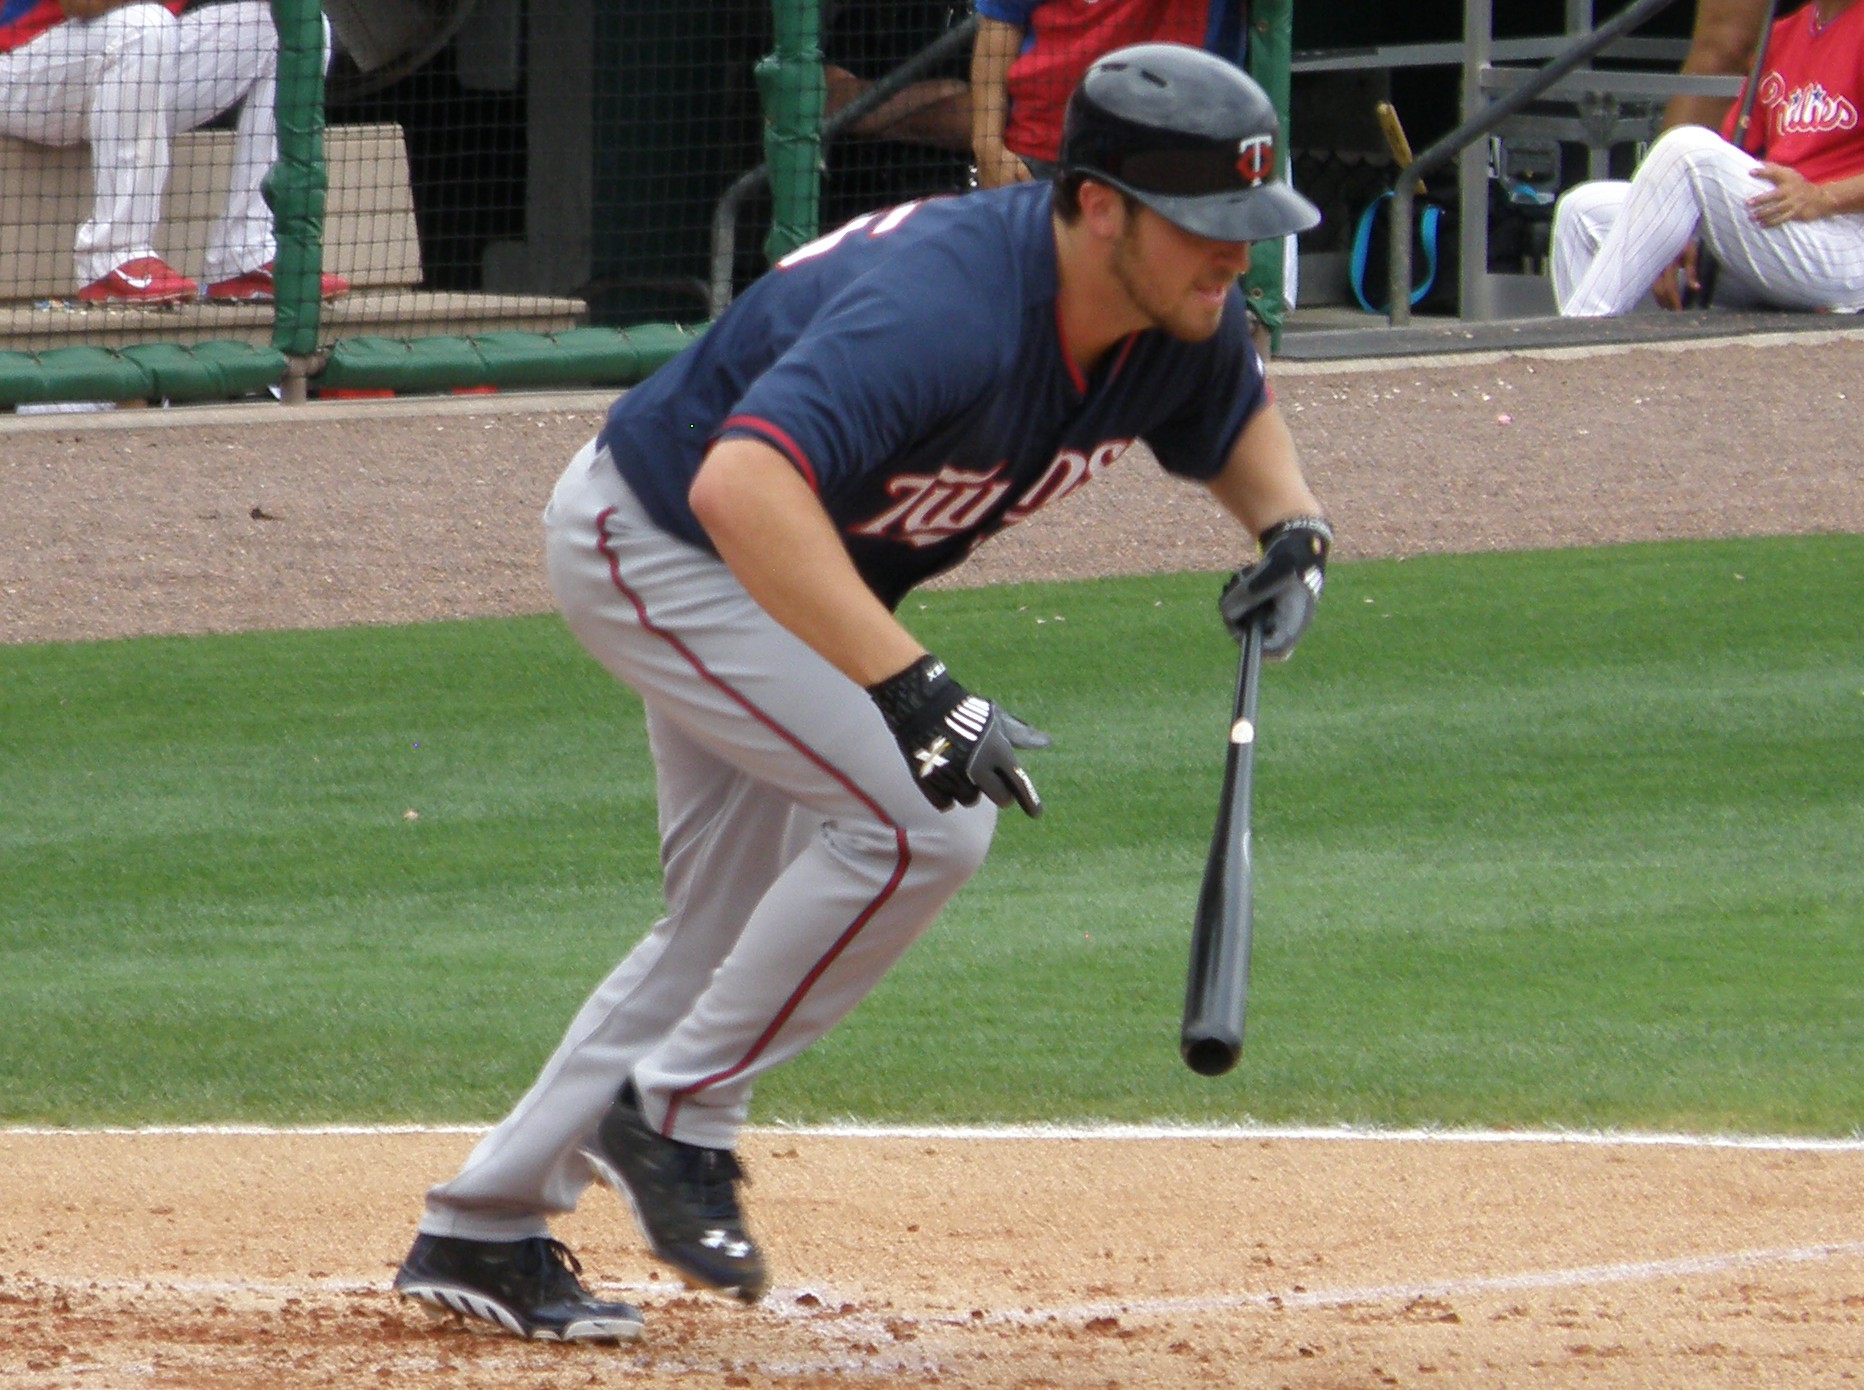 Something you don't see happen often: A Twins pitcher hitting. Or, in this case, Phil Hughes attempting to put down a bunt.